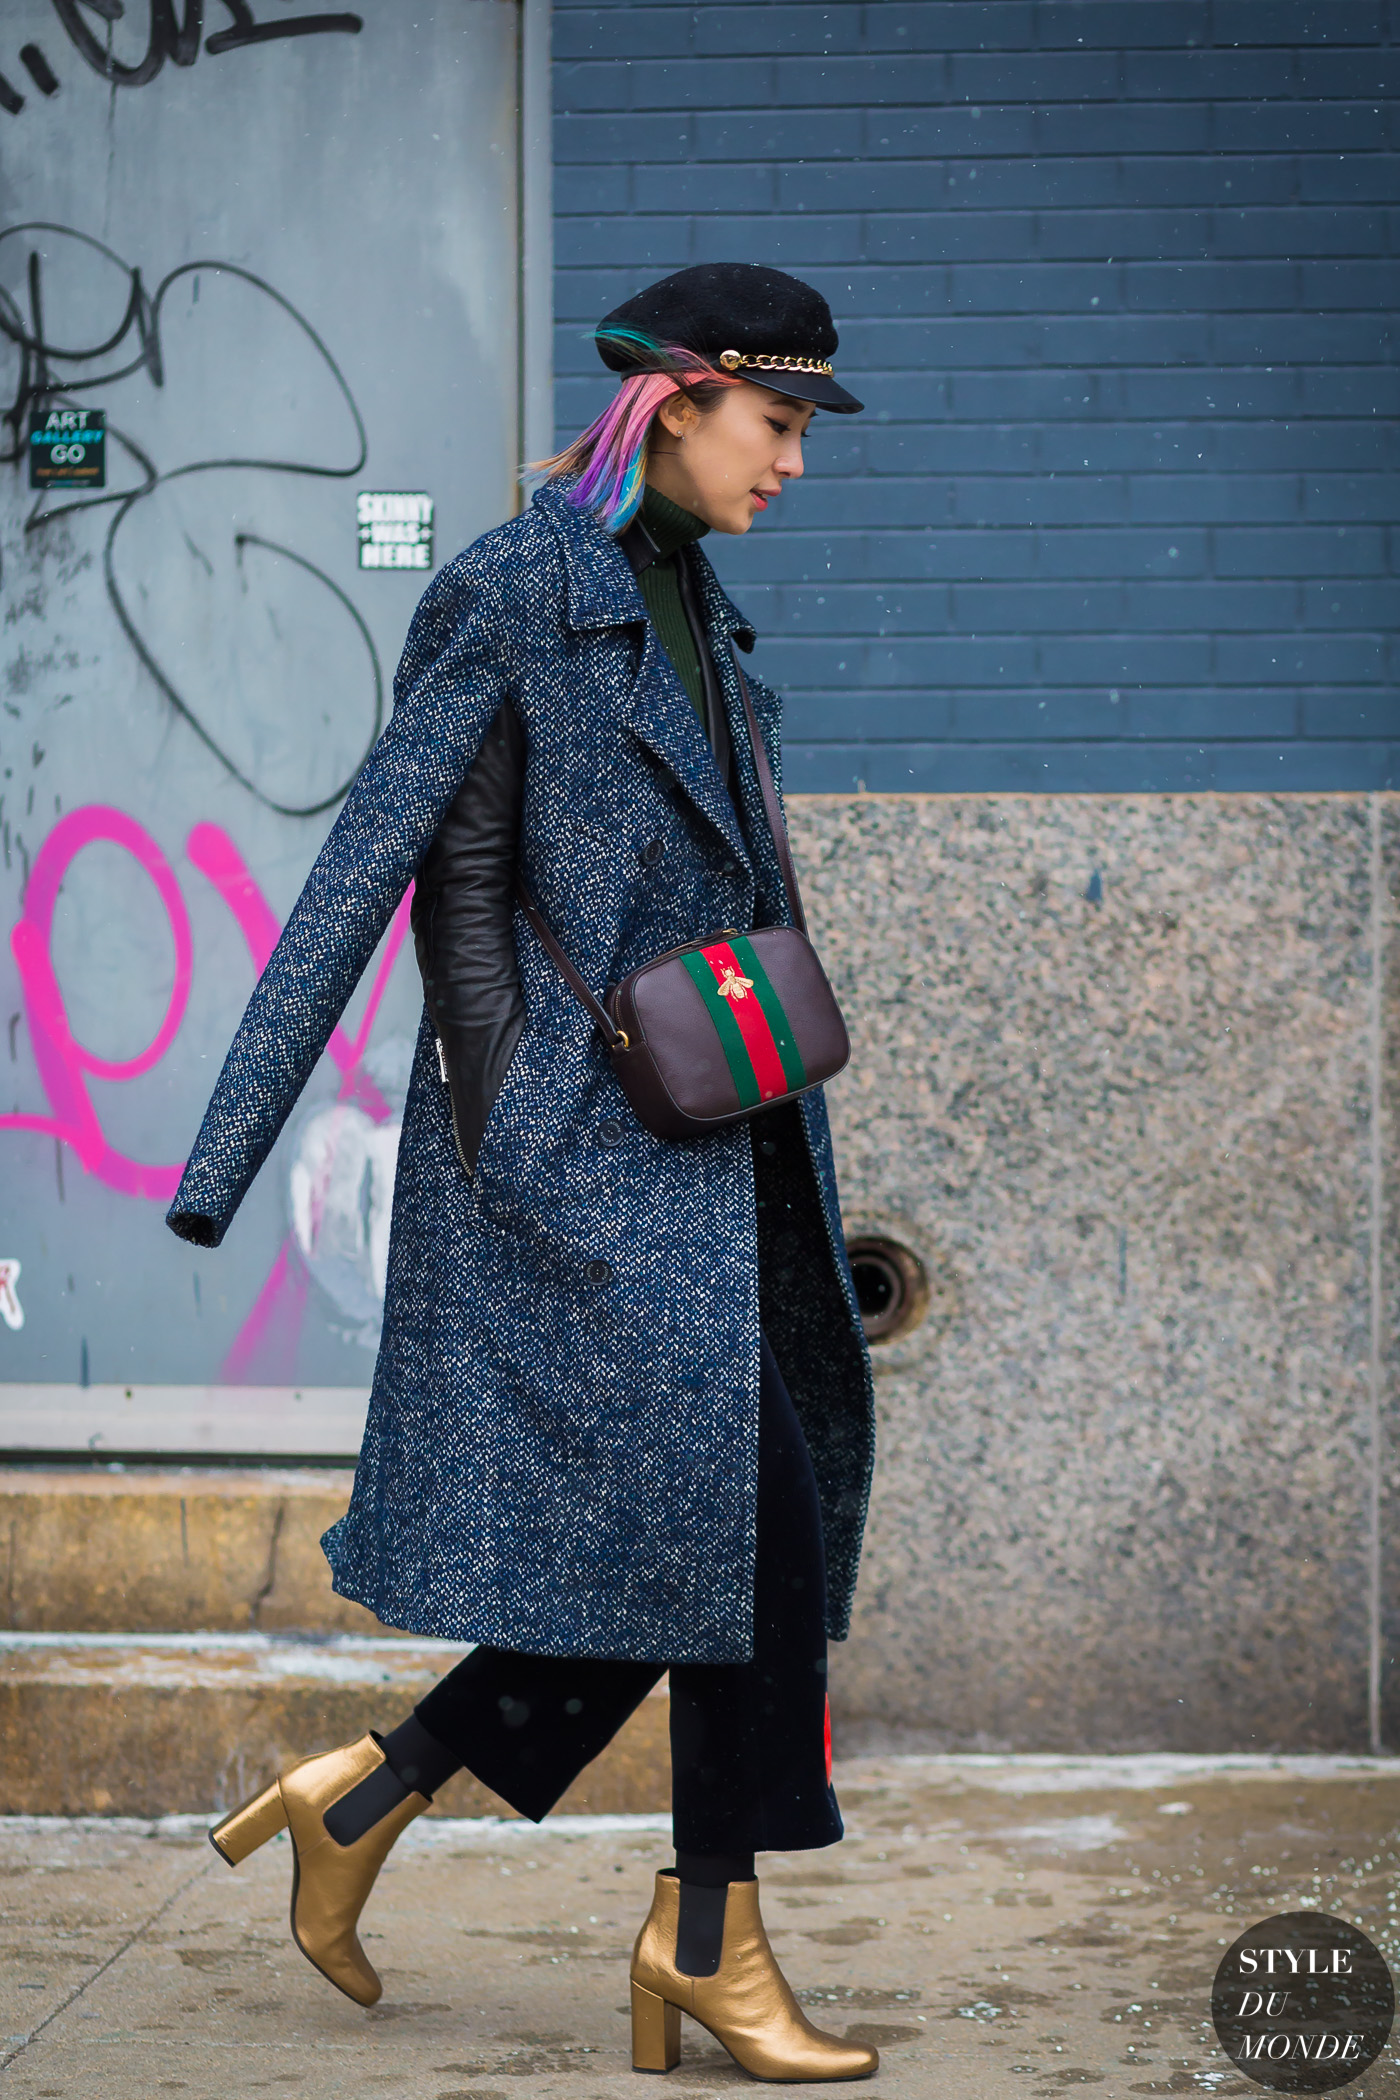 Irene Kim by STYLEDUMONDE Street Style Fashion Photography